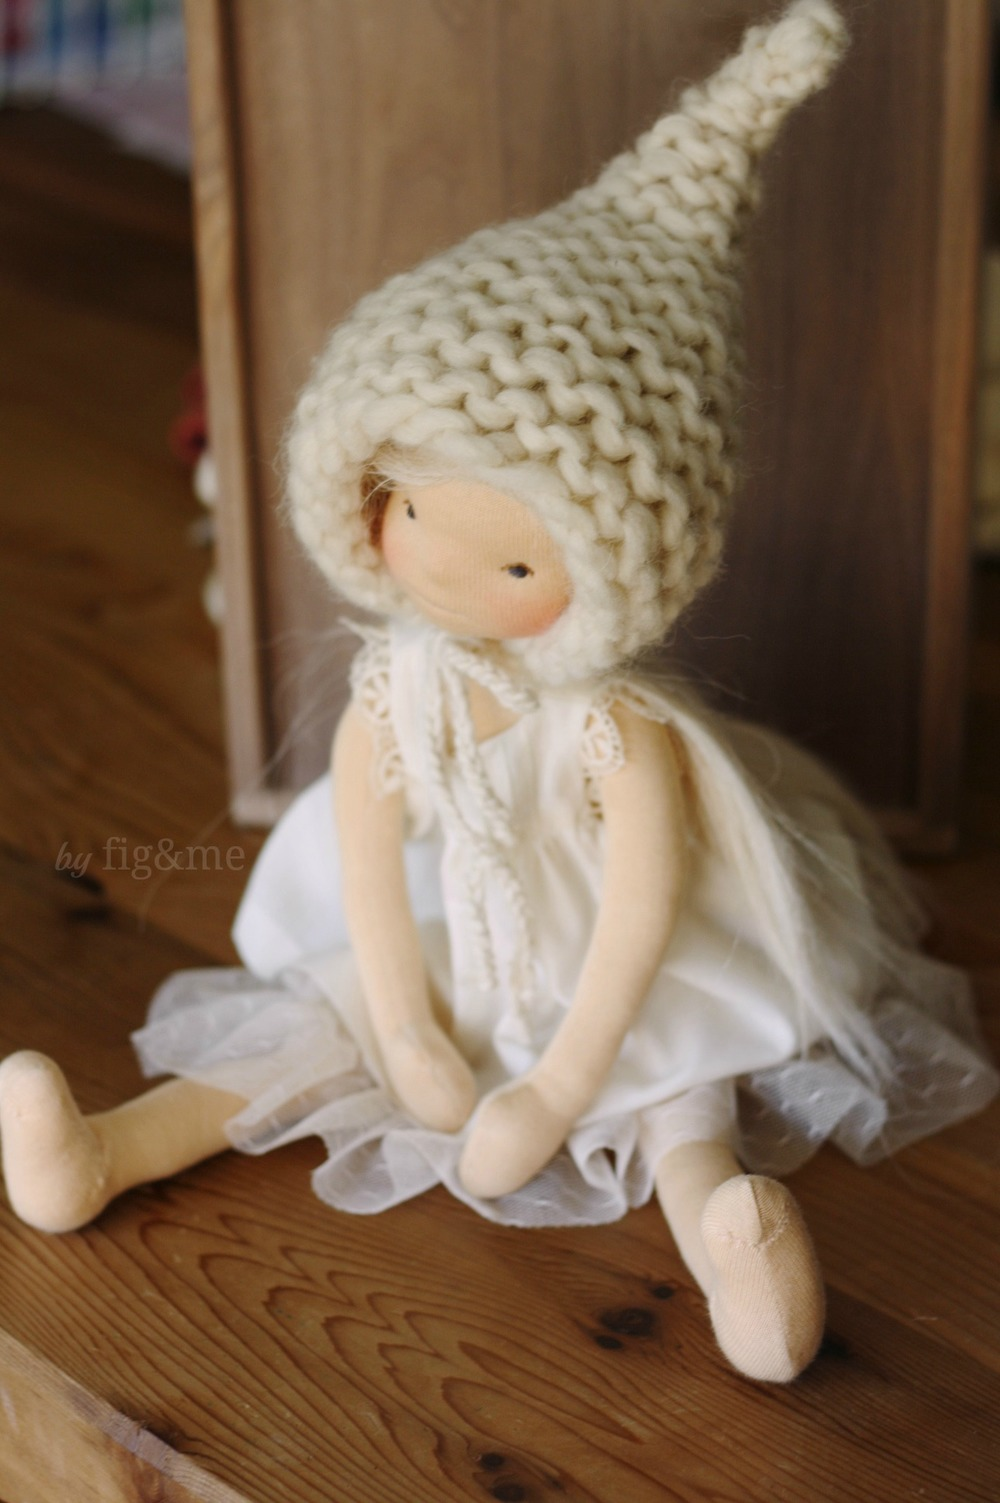 Handmade natural art doll by Fig and me.